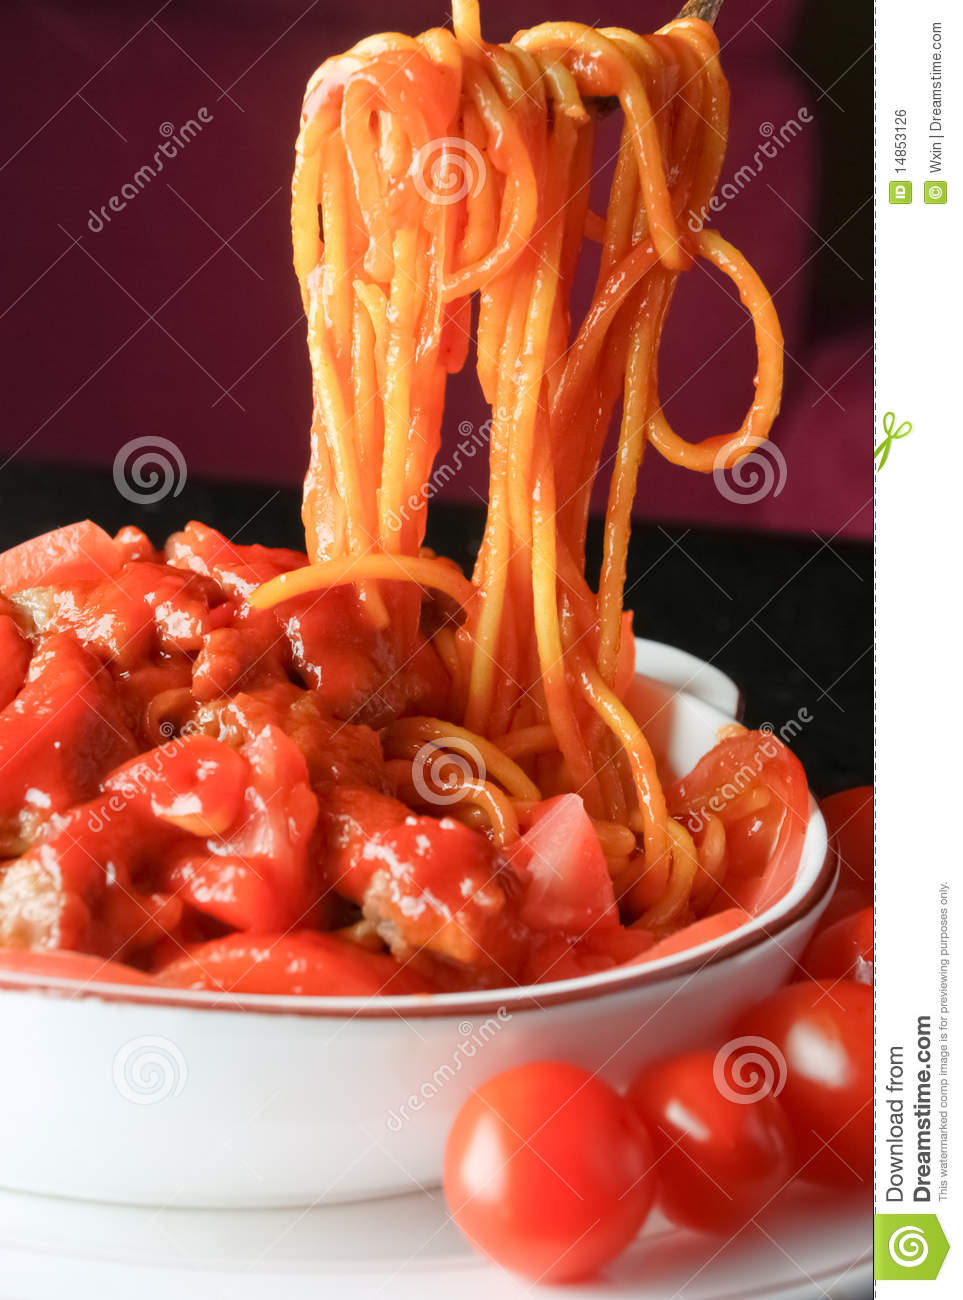 Chinese food- noodles with tomato and egg sauce